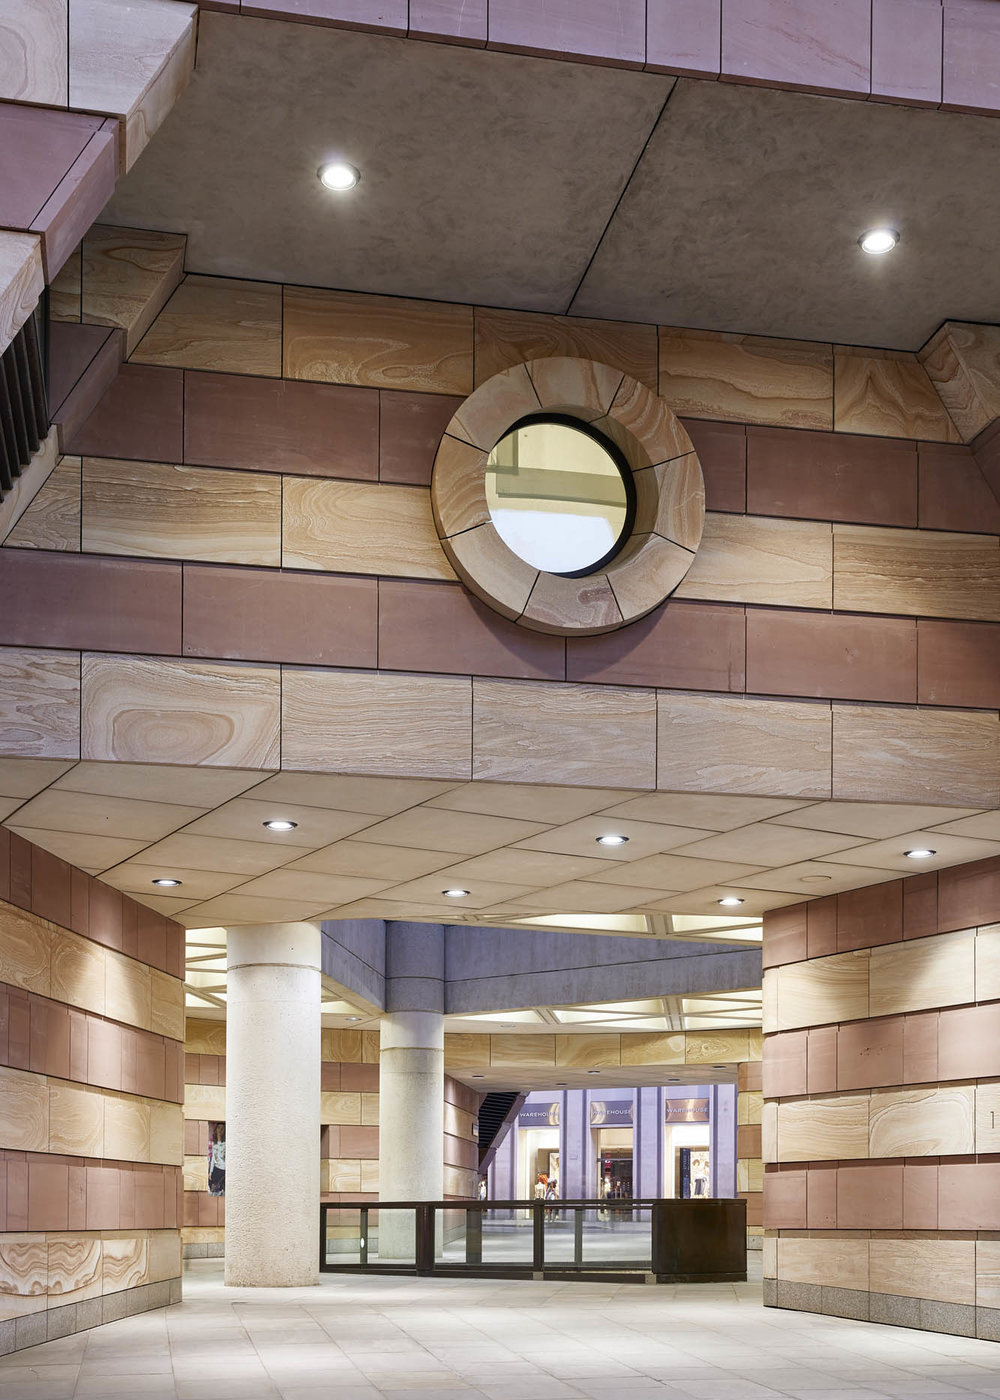 NO.1 POULTRY, LONDON: JAMES STIRLING